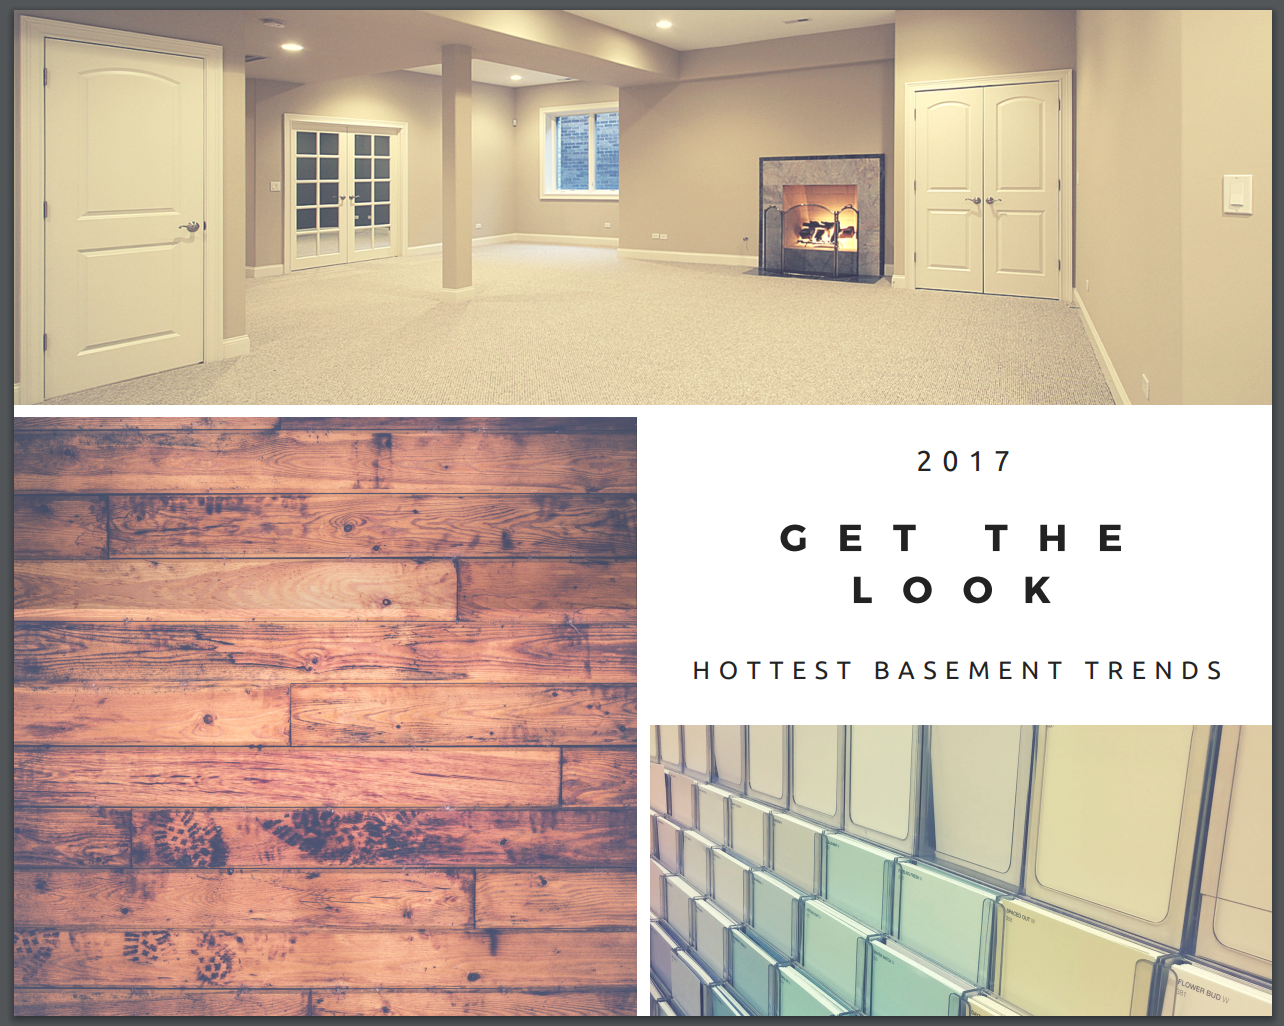 Hottest Basement Trends 2017